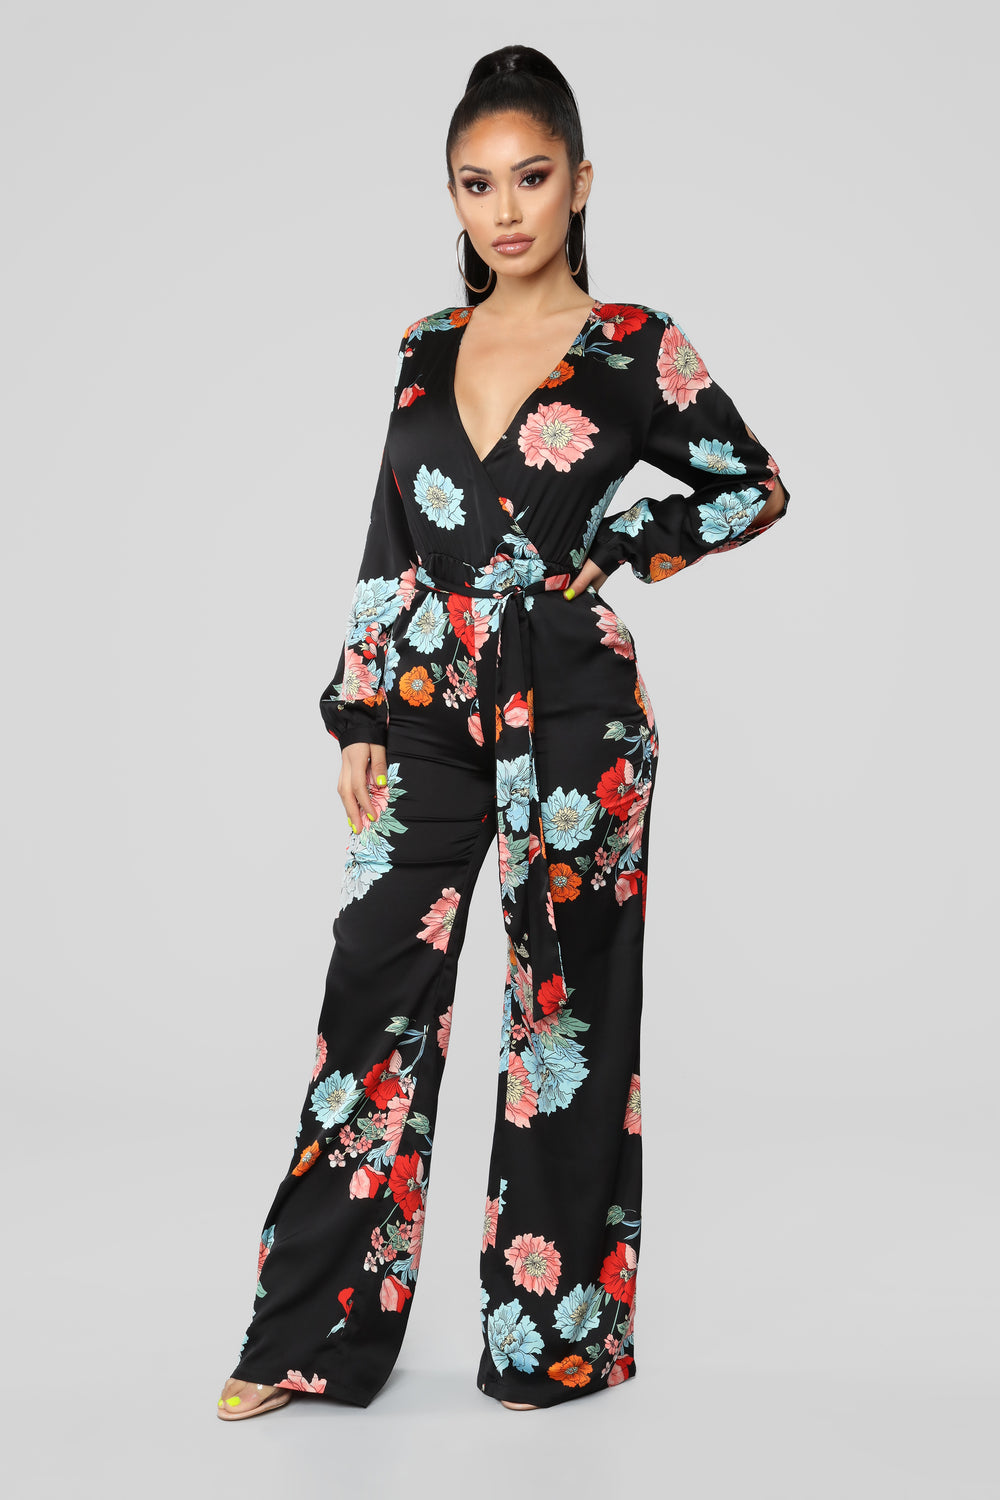 Vibes In The Garden Floral Jumpsuit - Black/Multi